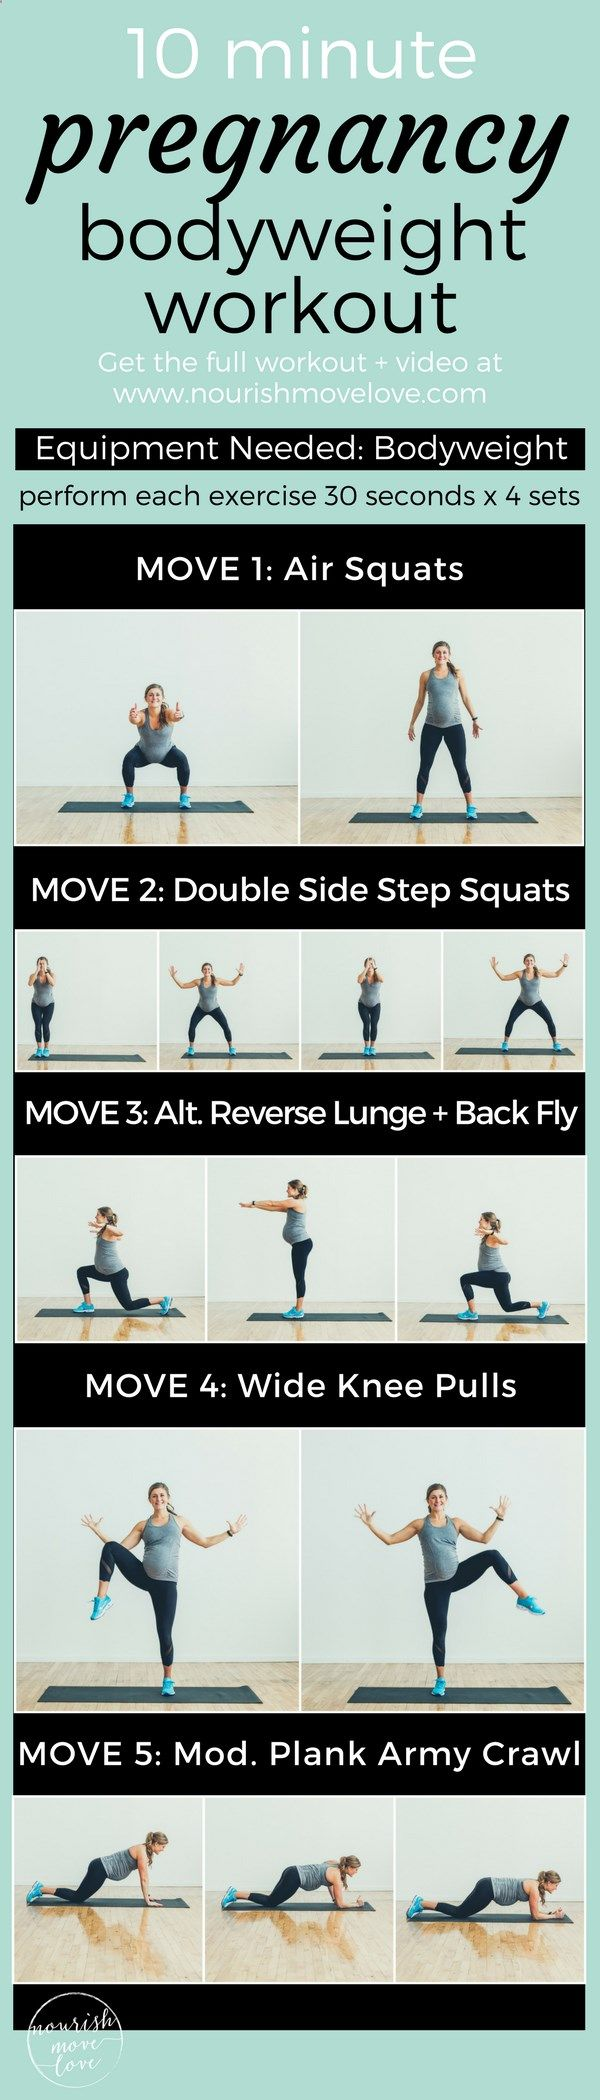 Effective 10 minute, total body workout for the pregnant mom, new mom, and busy mom. Combines bodyweight strength training exercises with low impact cardio. Perfect for naptime or a short total body burn. Air squats, double side step squats, reverse lung back fly, wide knee pulls, modified plank army crawl. Full workout with video www.nourishmovelo...